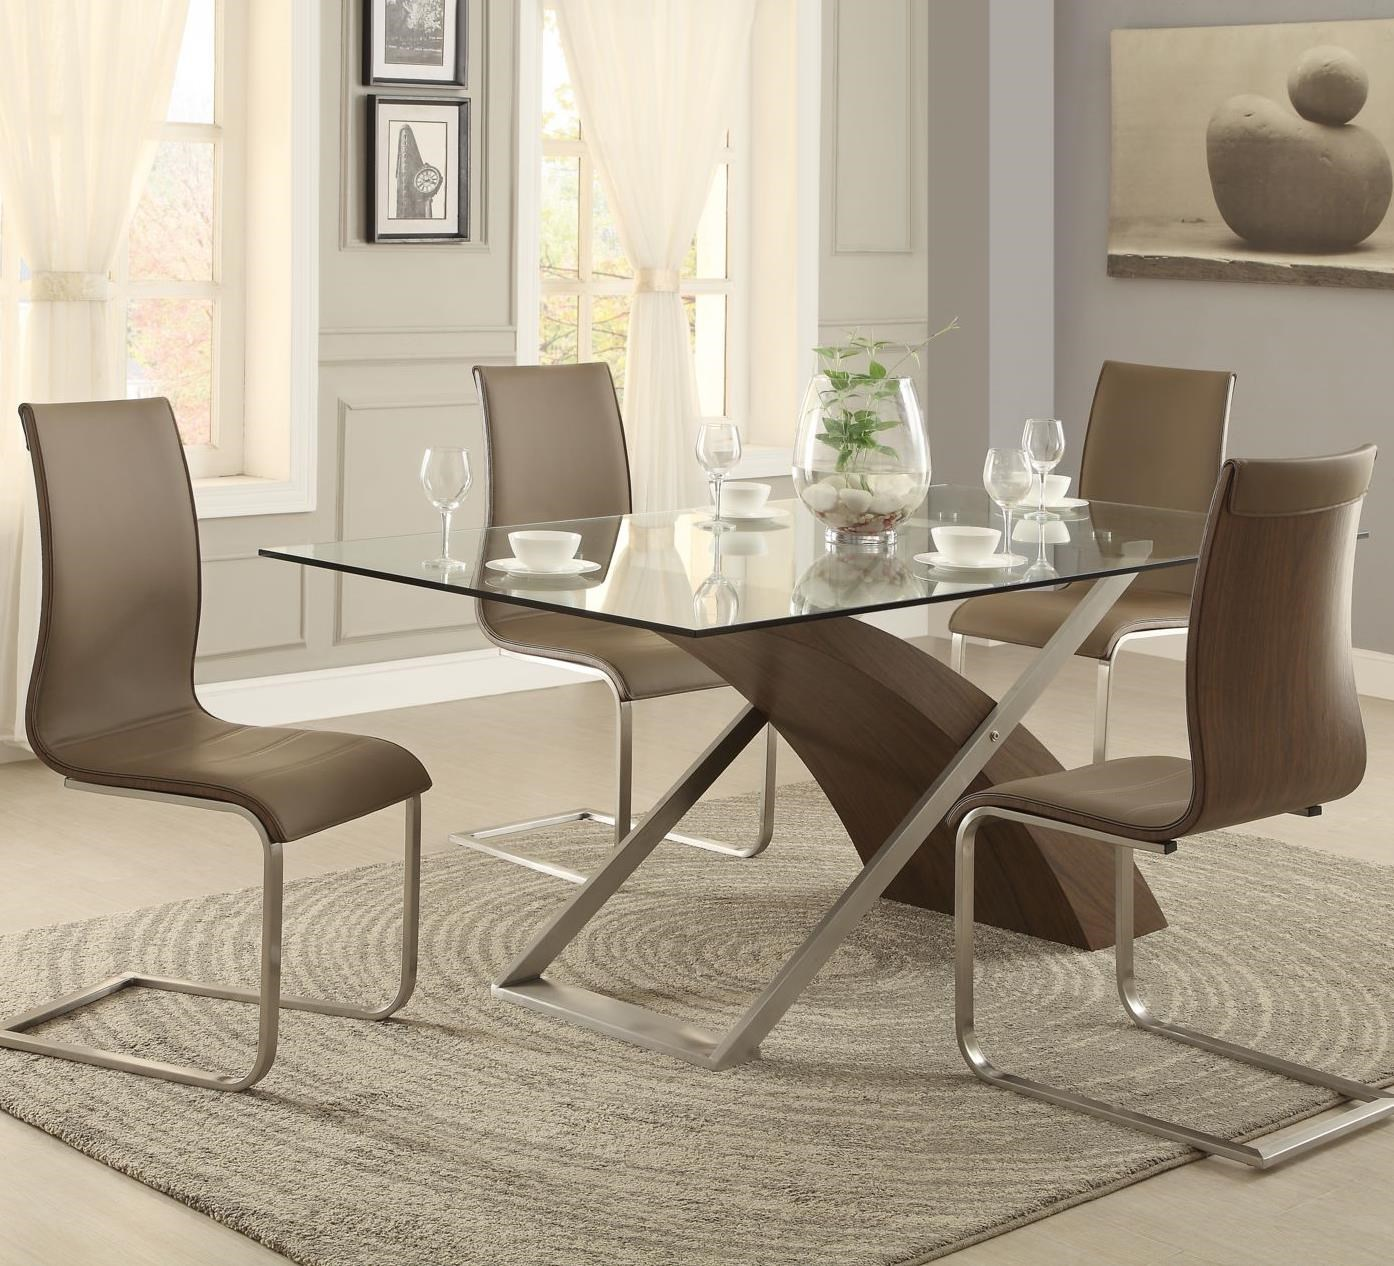 Homelegance Odeon 5 Piece Dining Set with Glass Table Top  : odeon2052615261gwbmb4x5261s 2p b1jpgscalebothampwidth500ampheight500ampfsharpen25ampdown from www.boulevardhomefurnishings.com size 500 x 500 jpeg 57kB